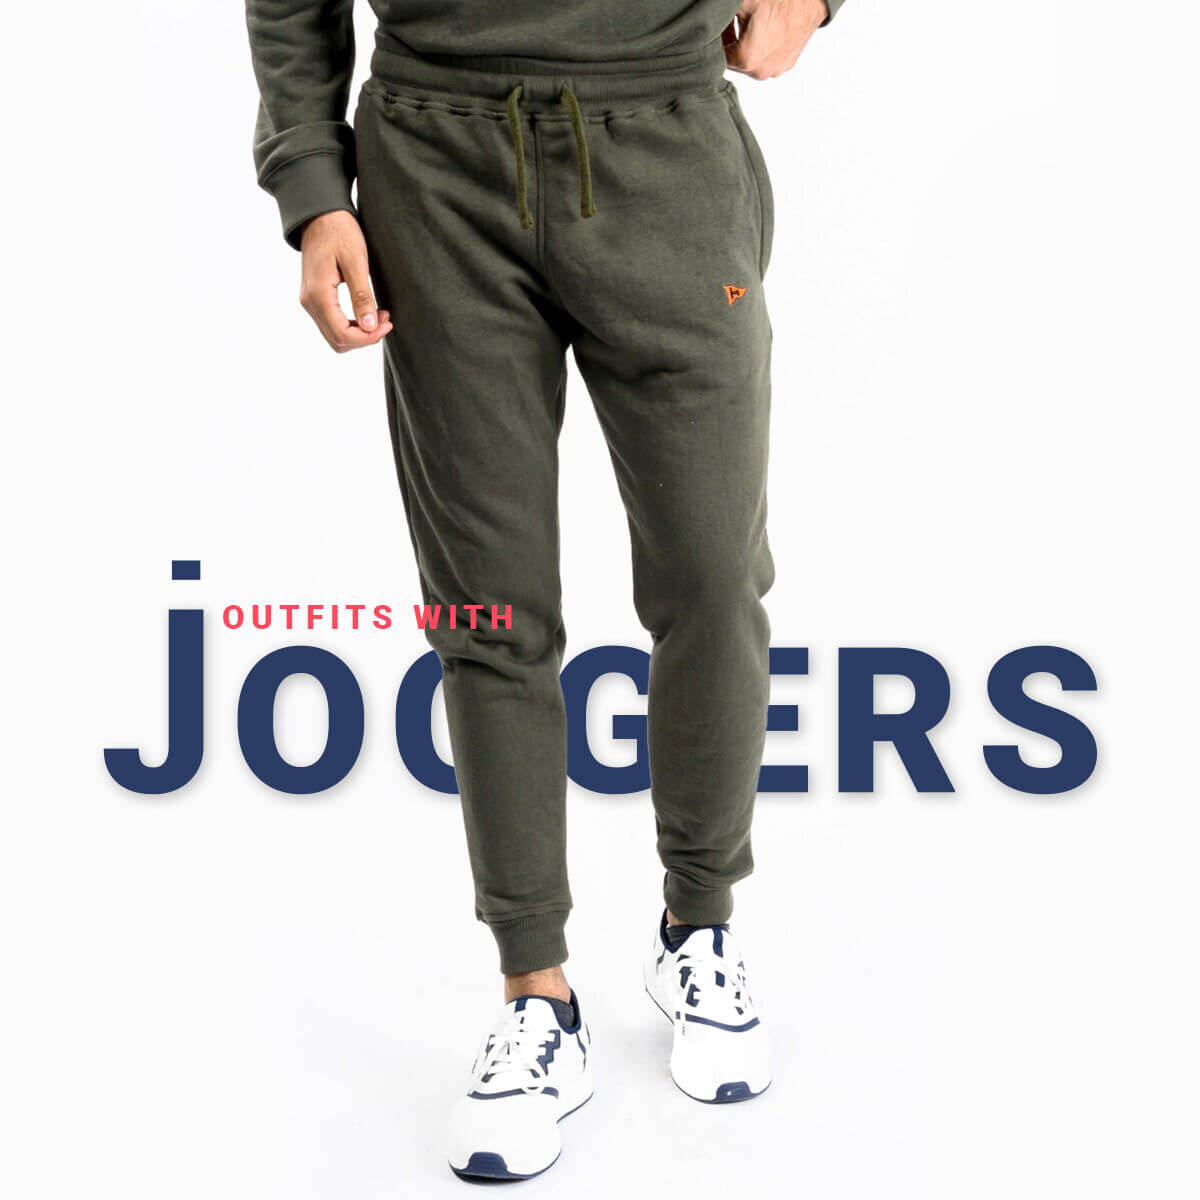 Outfits with Joggers: Know About the Joggers Trend